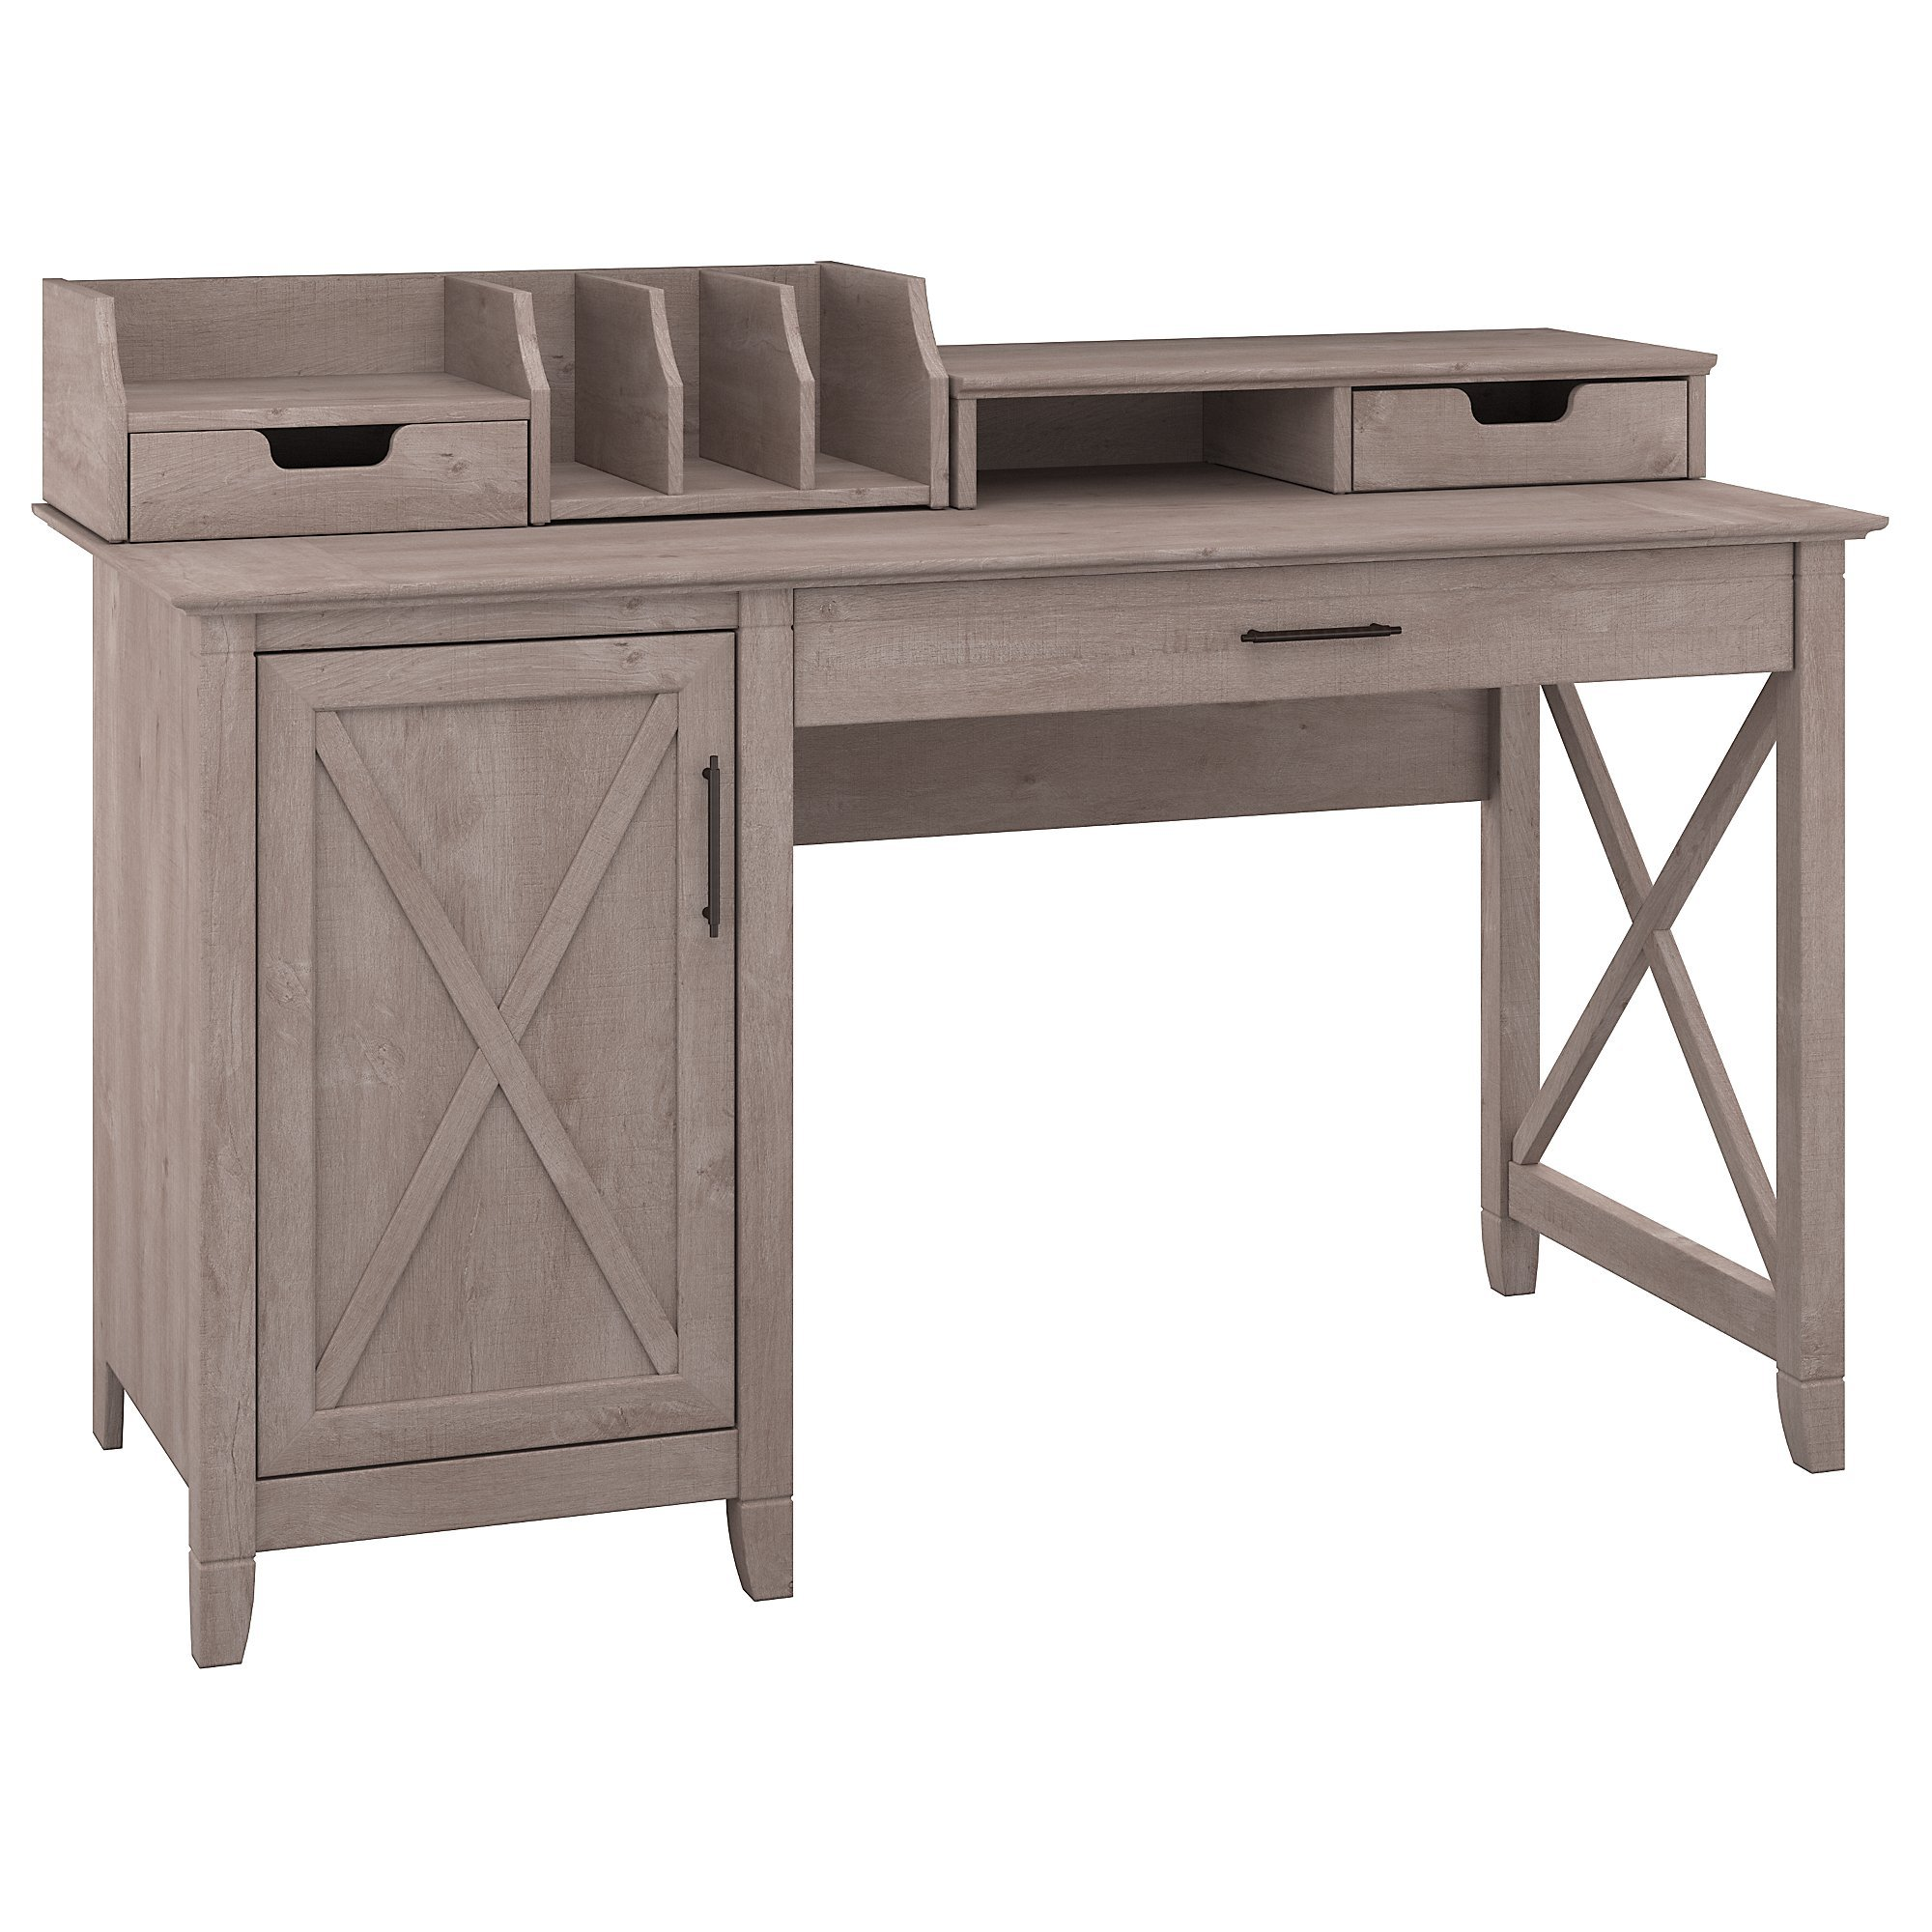 Bush Furniture Key West 54W Computer Desk with Storage and Desktop Organizers in Washed Gray by Bush Furniture (Image #2)